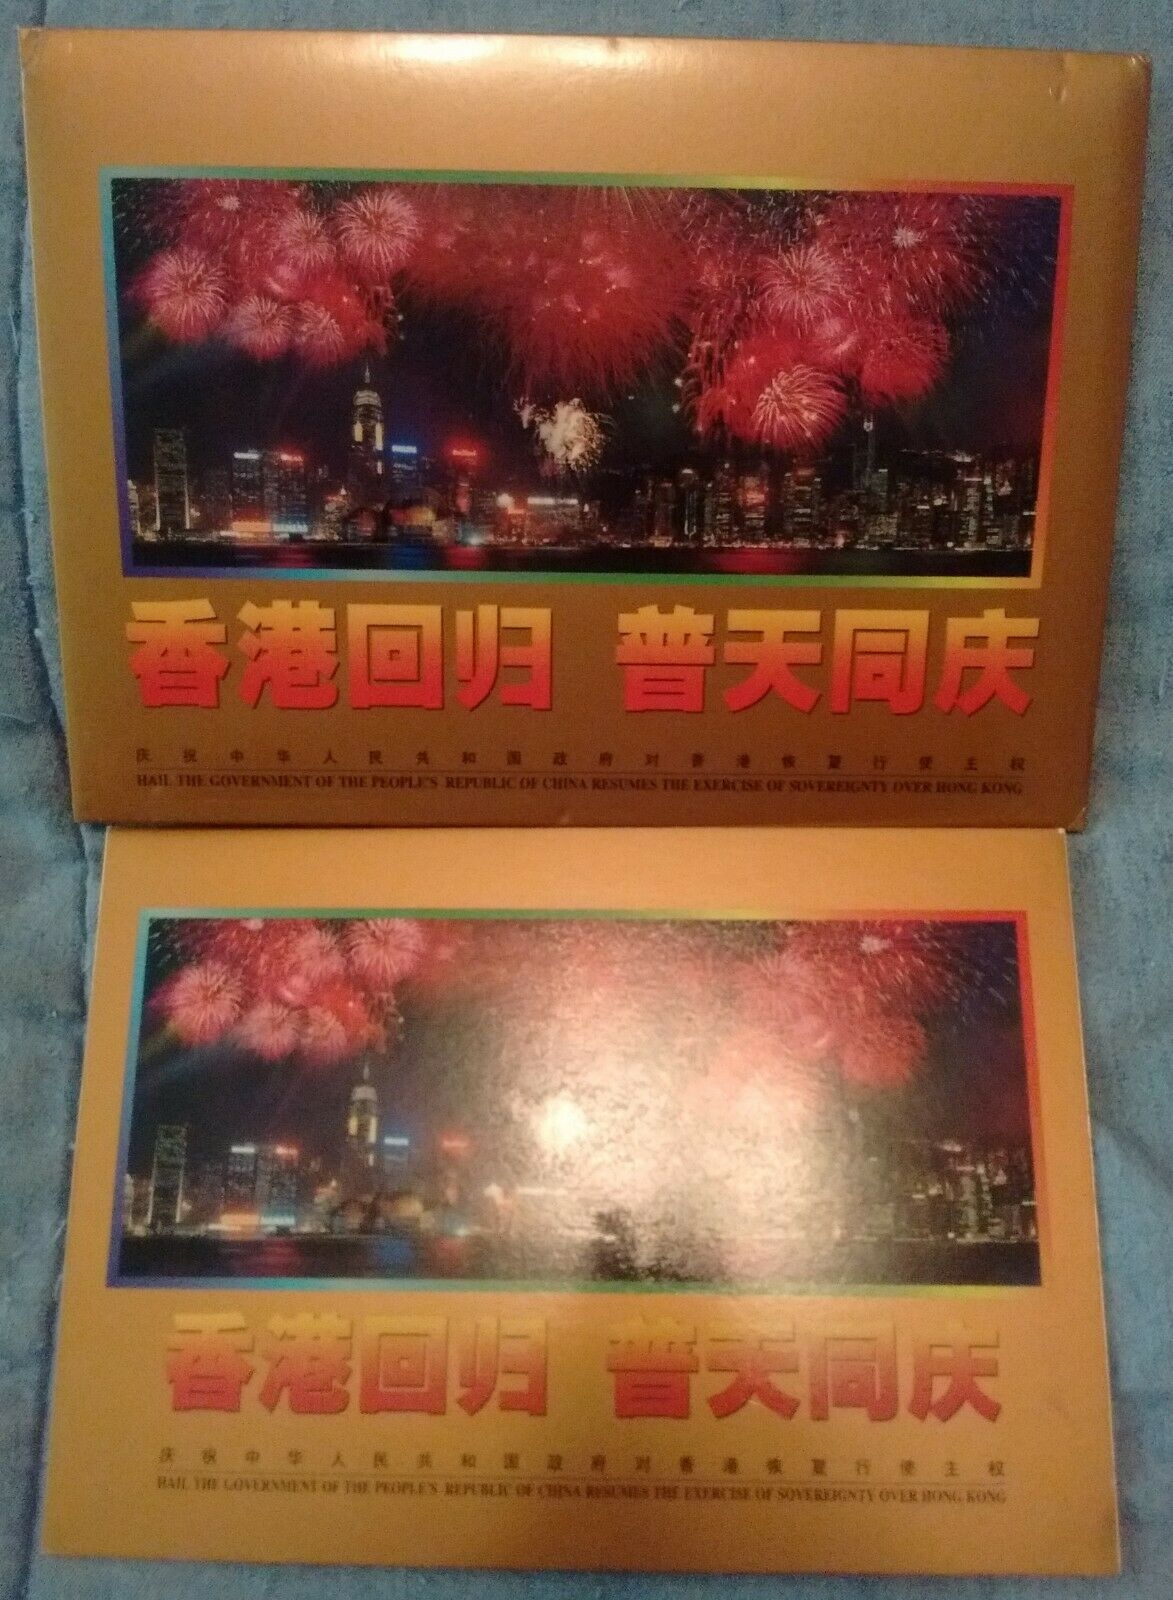 People s Republic Of China Scott 2775 In Souvenir Folder As Issued - $19.95